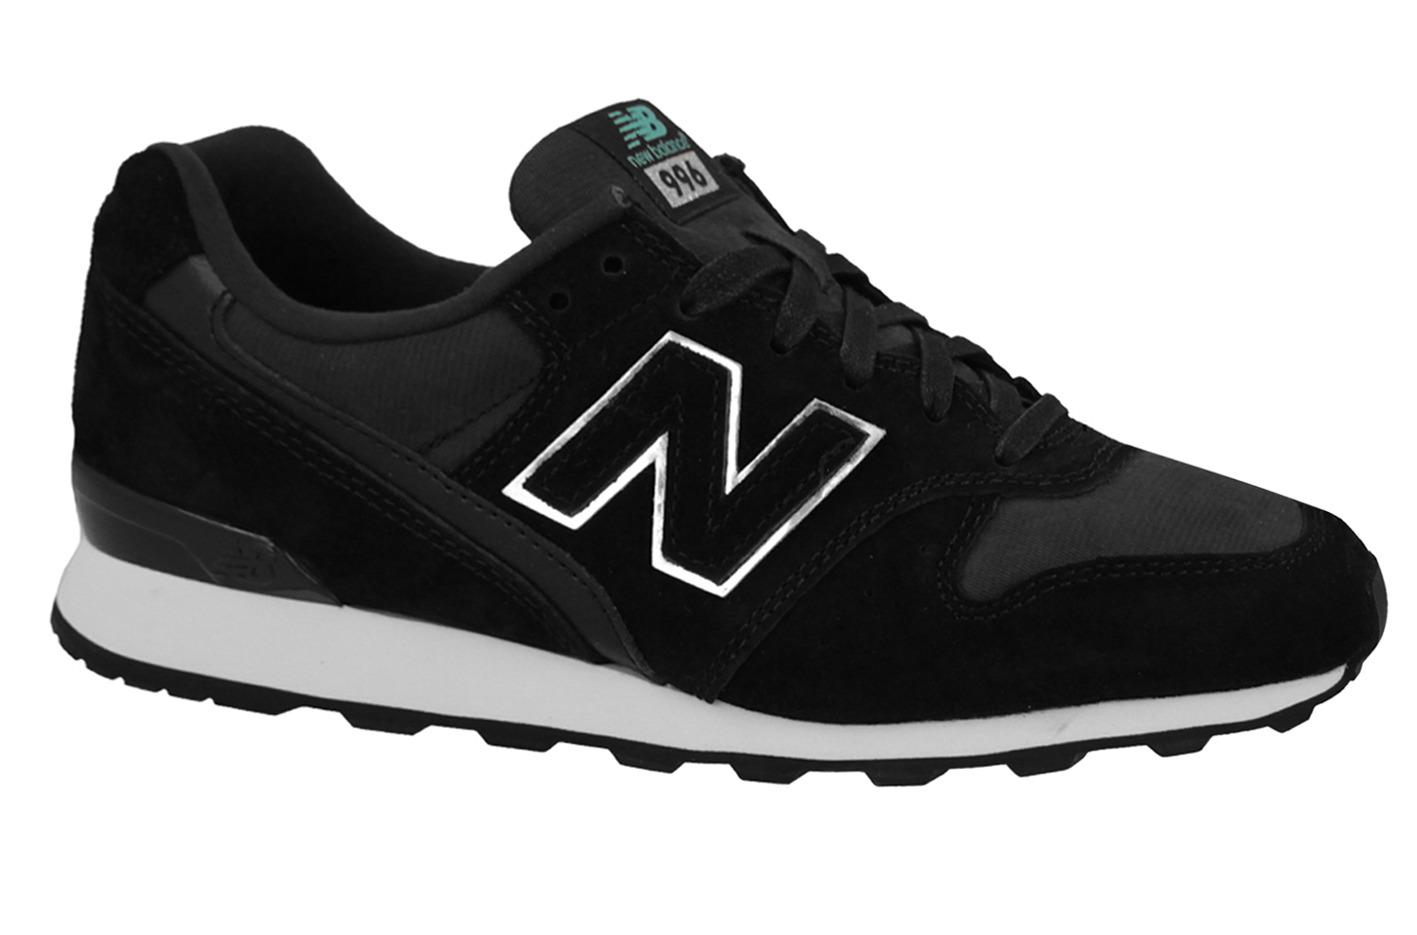 http://yessport.pl/pol_pl_BUTY-LIFESTYLE-NEW-BALANCE-WR996EF-7349_2.jpg